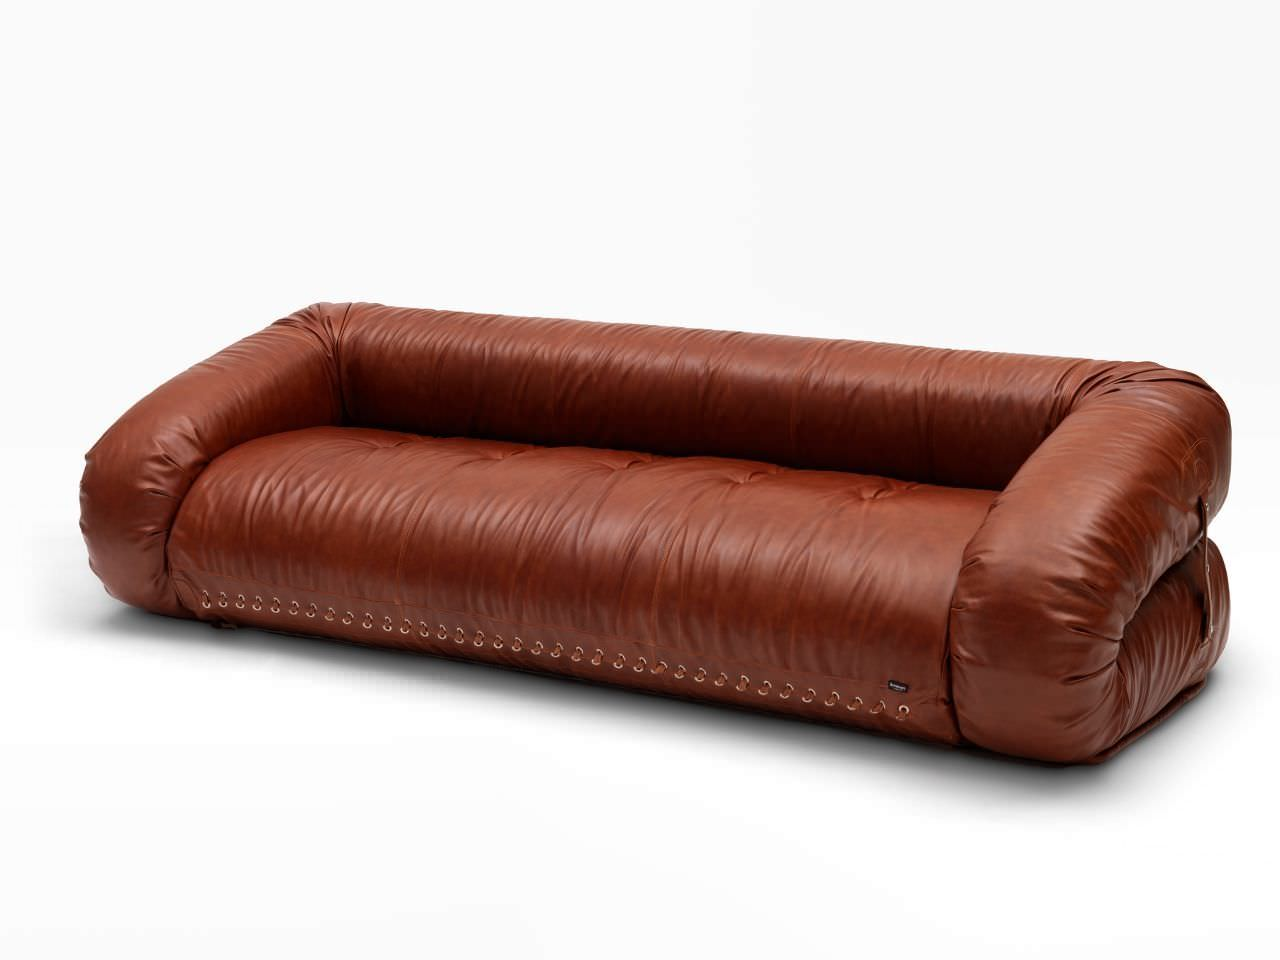 Sofa Bed Contemporary Leather 3 Seater Anfibio By Alessandro B